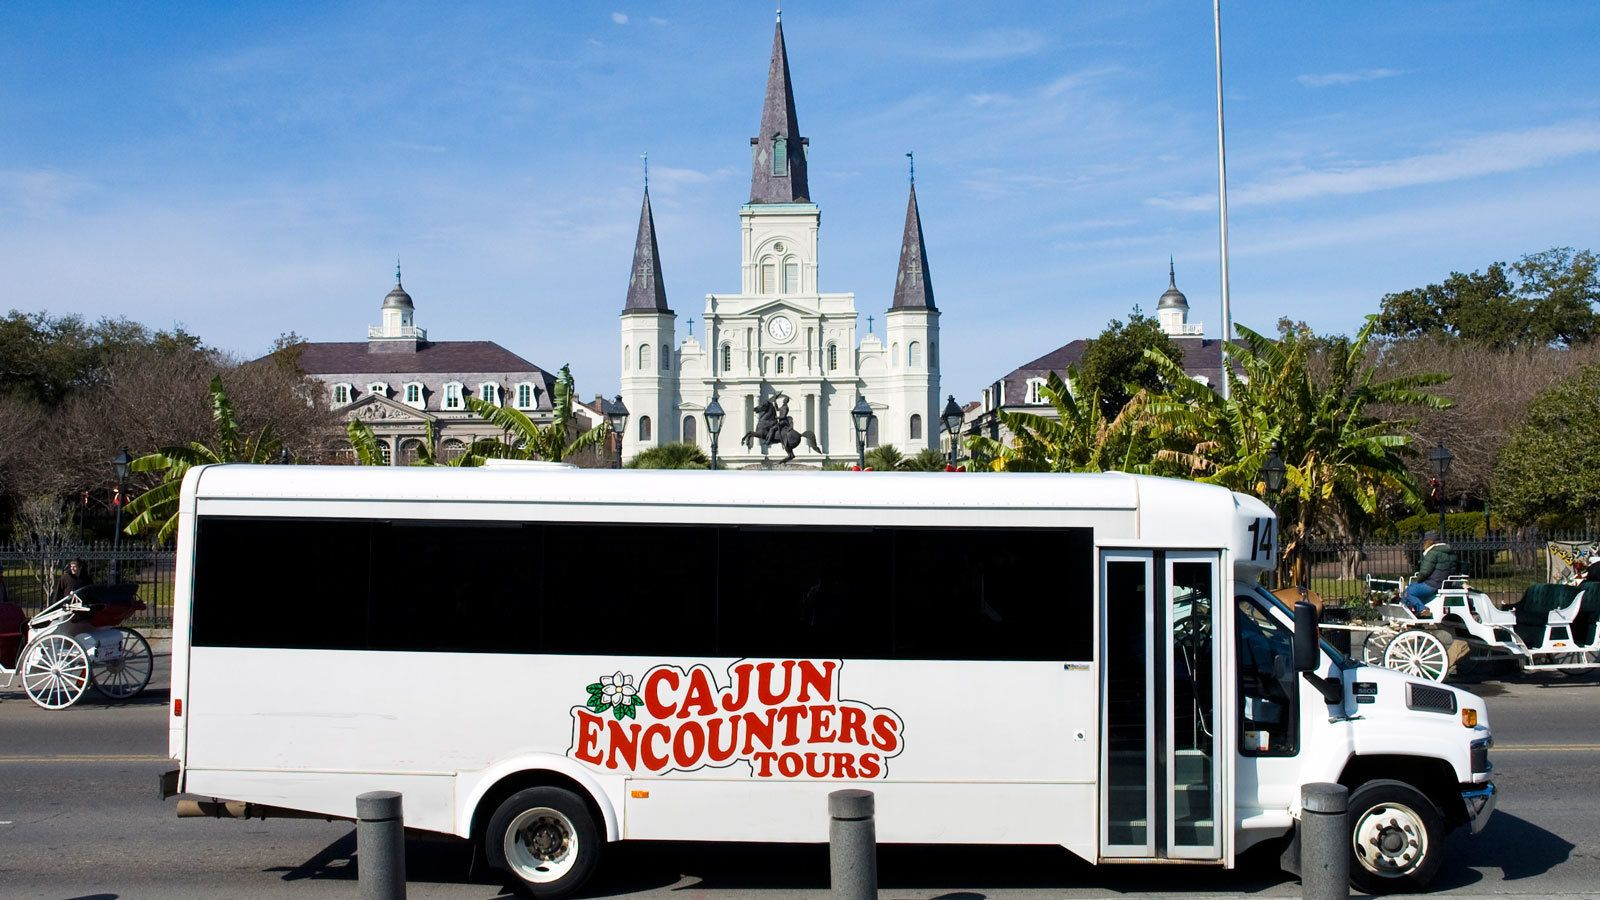 tour bus parked outside St. Louis cathedral in New Orleans